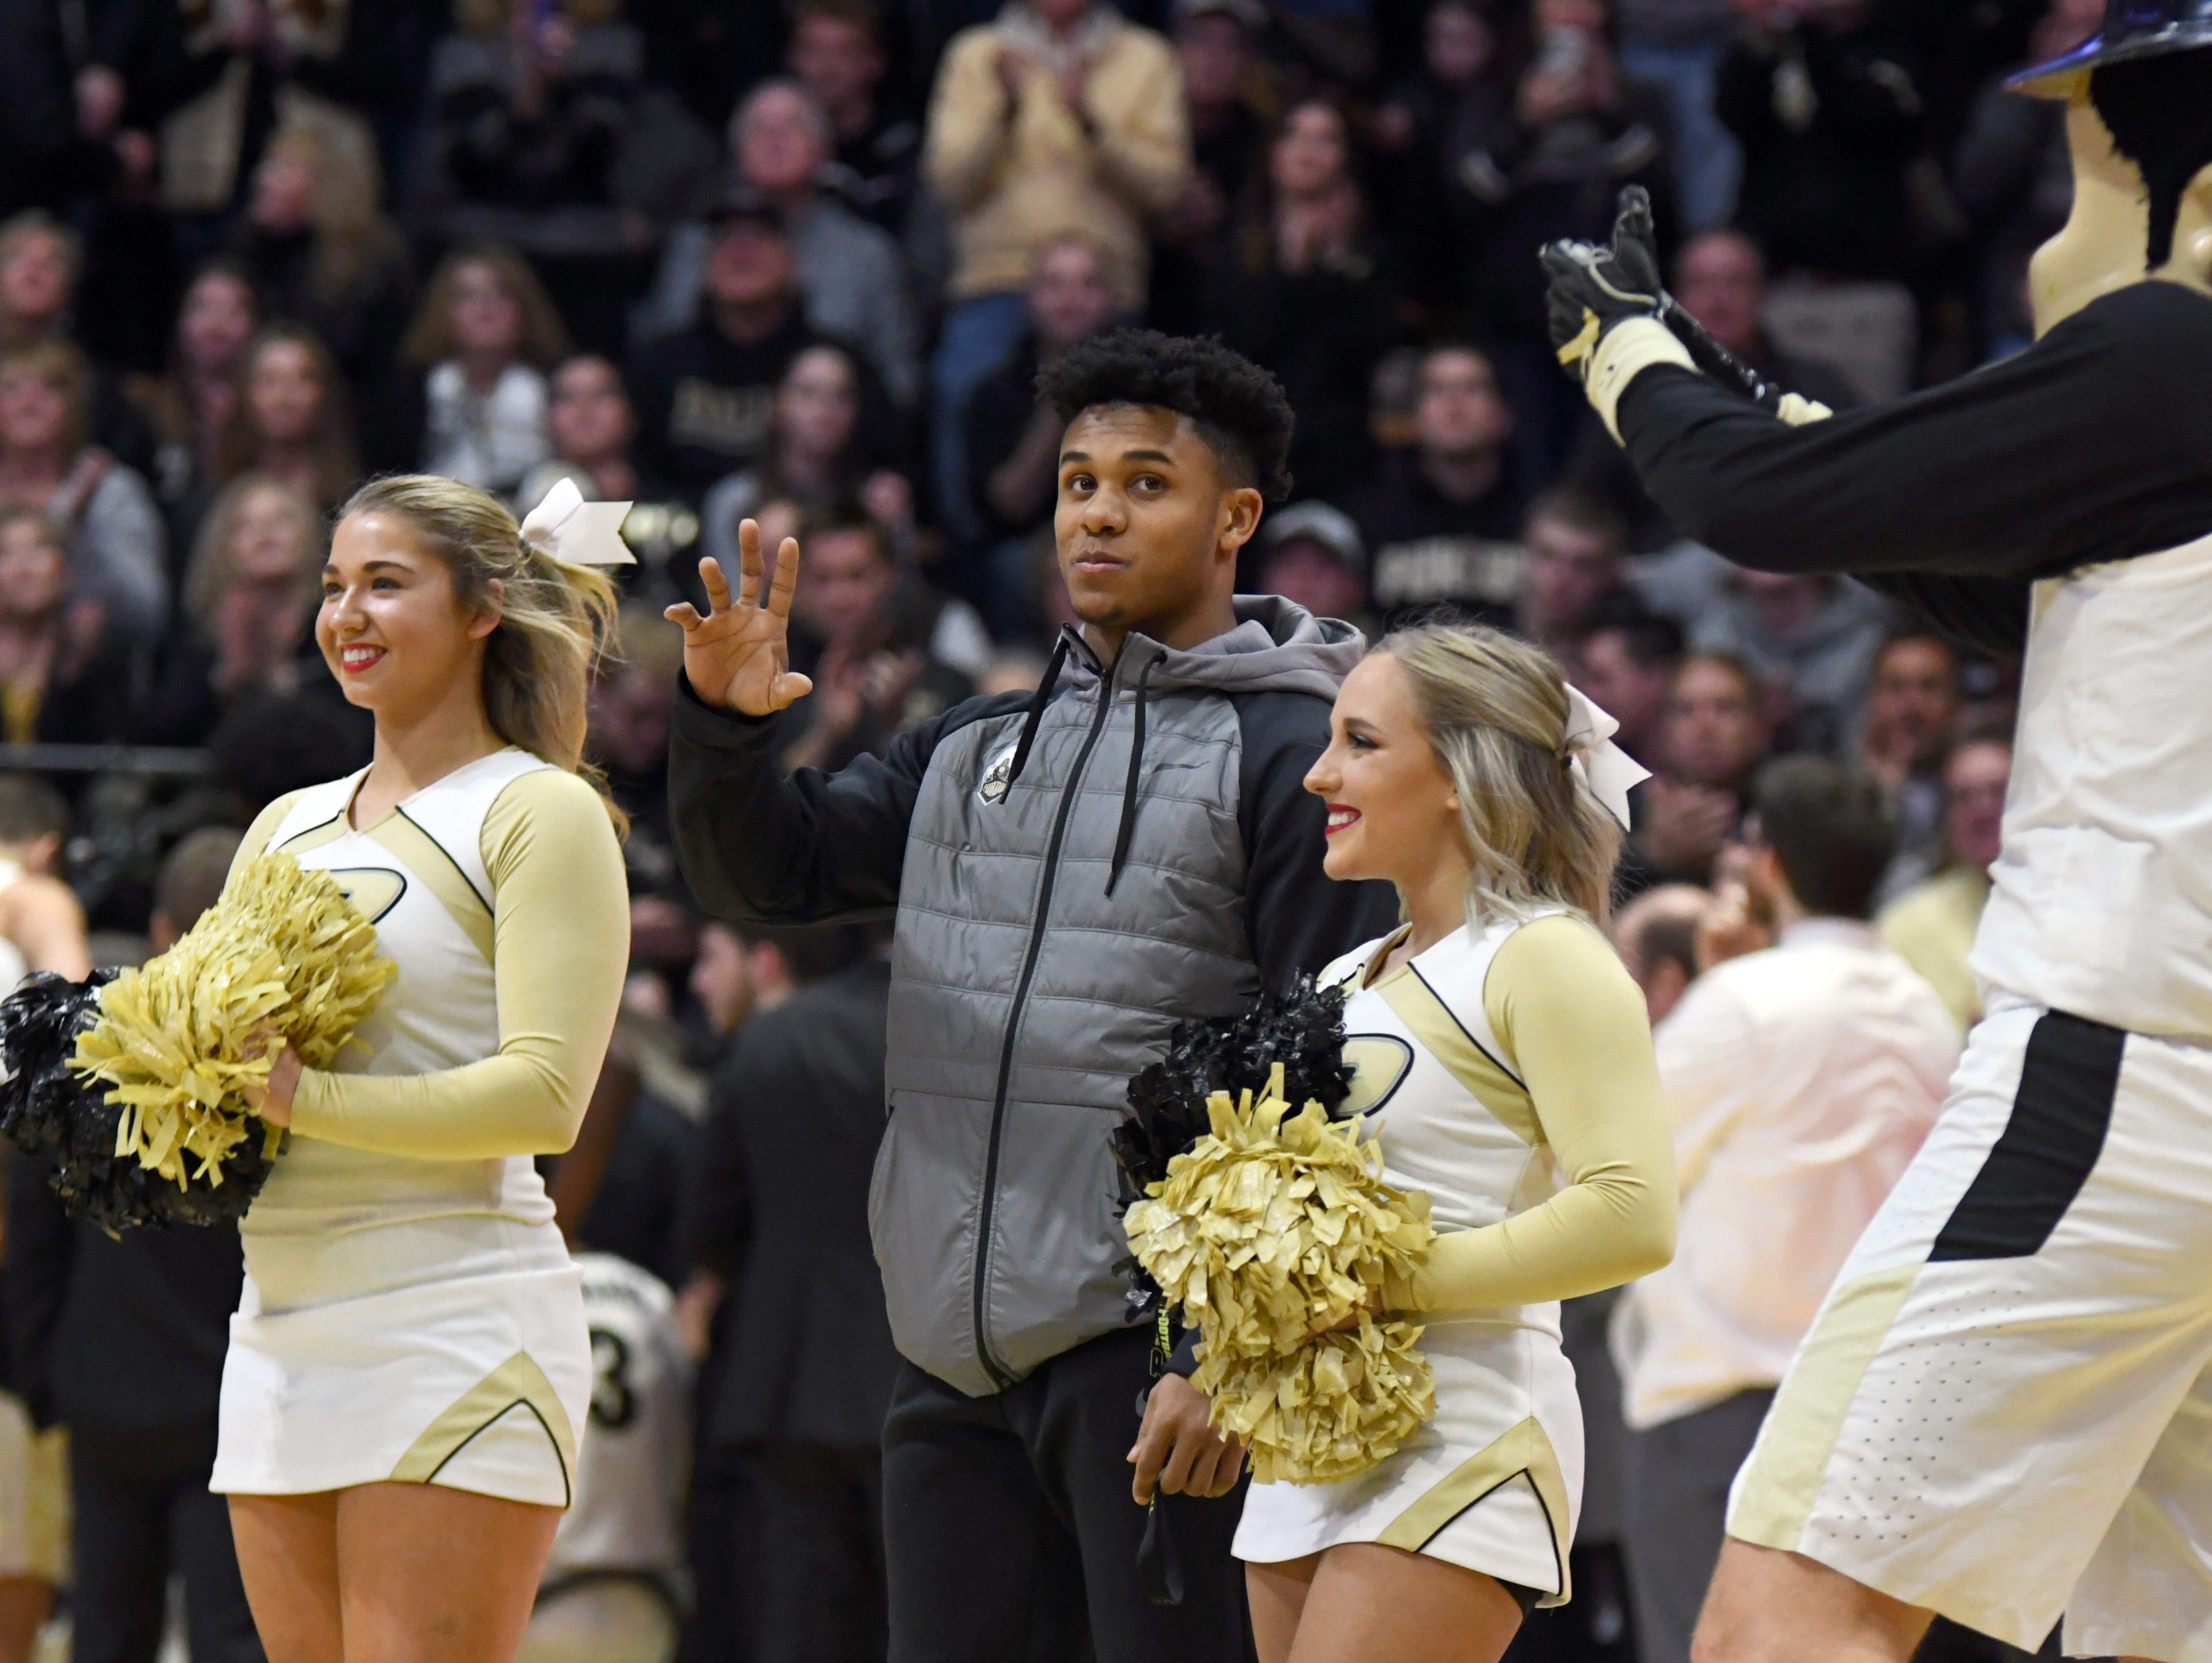 Action from Purdue's 89-54 win over Rutgers at Purdue University in West Lafayette on January 15, 2019.